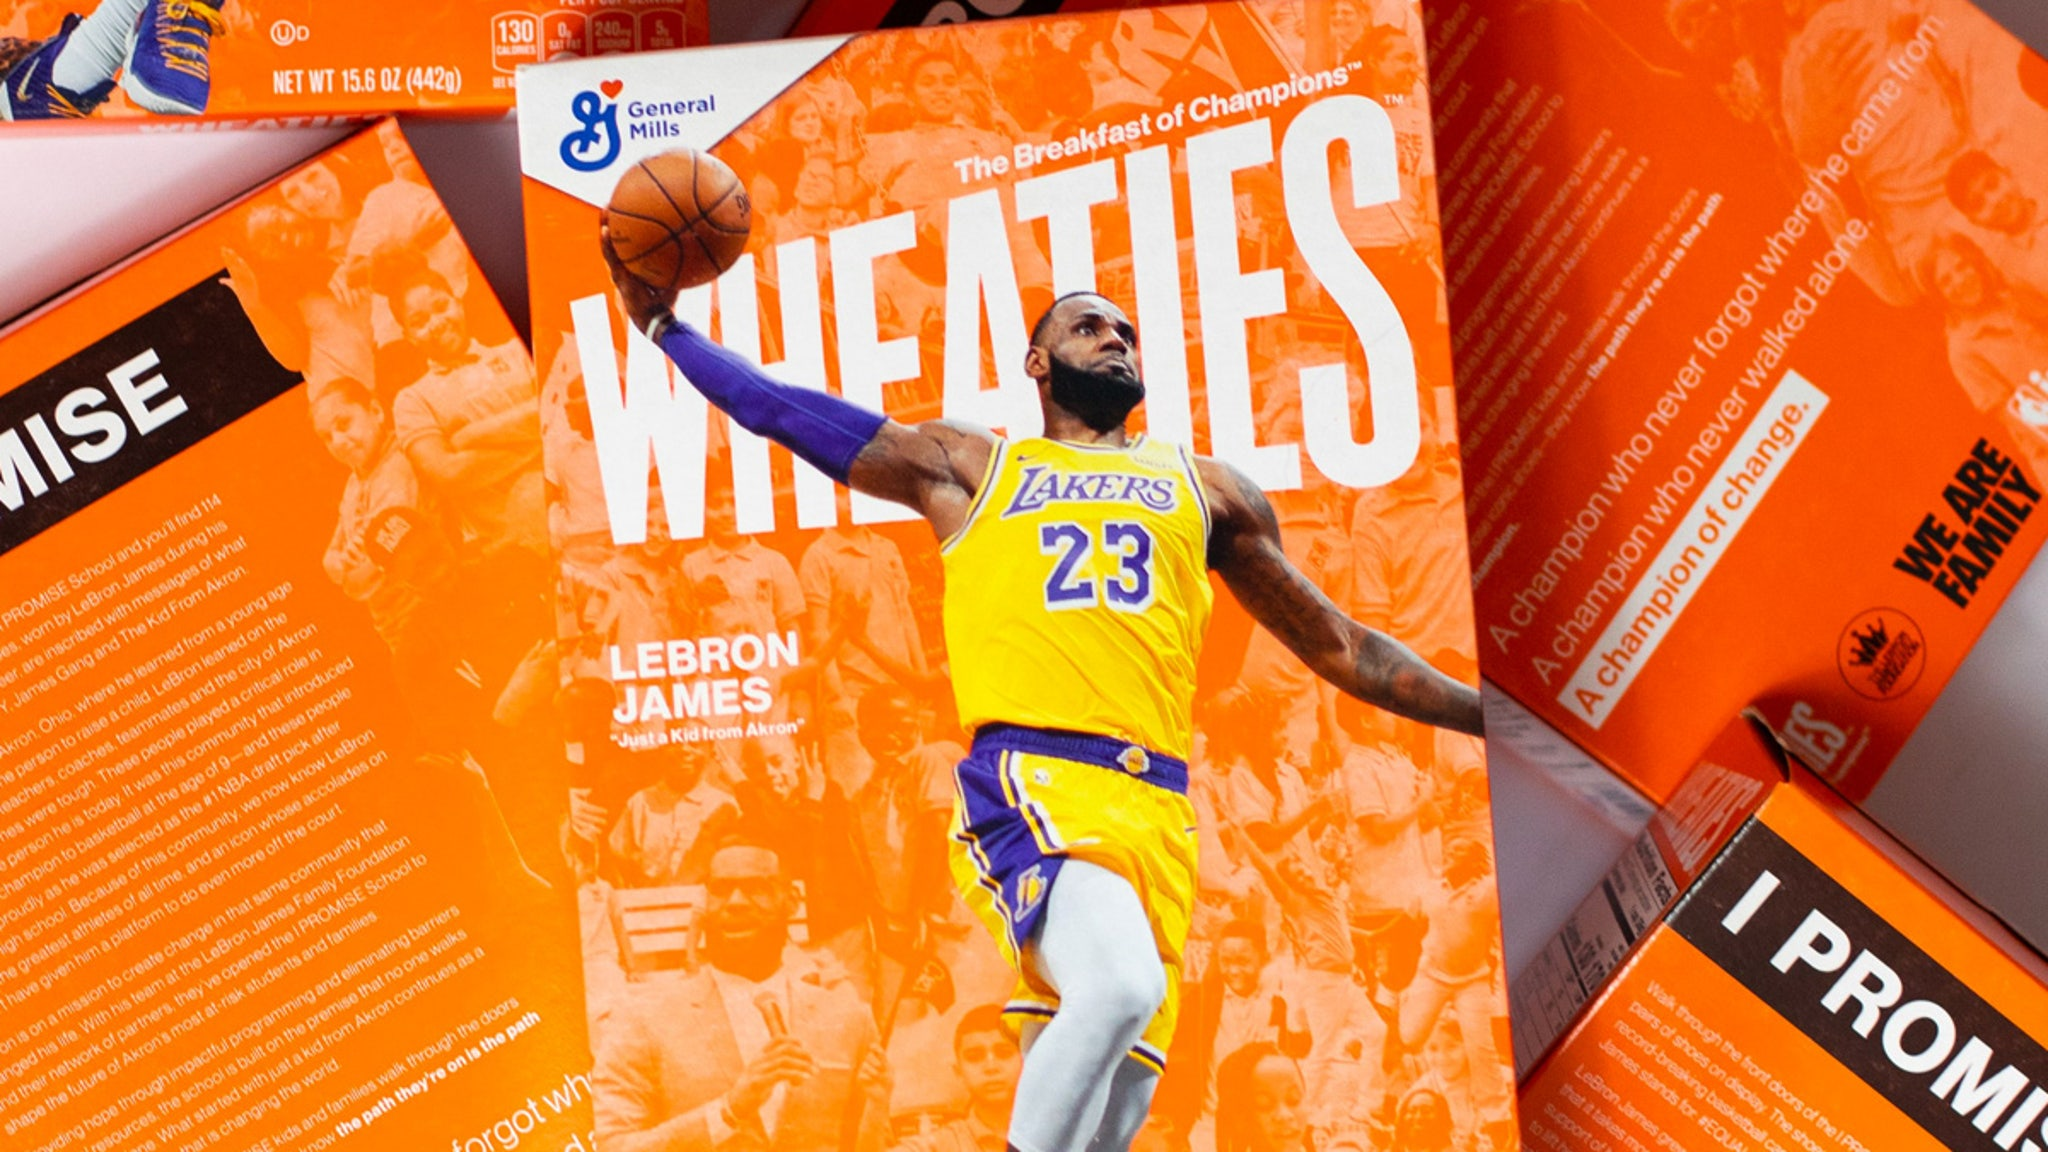 LeBron James Tapped as New Wheaties Box Athlete, Takes Over for Serena